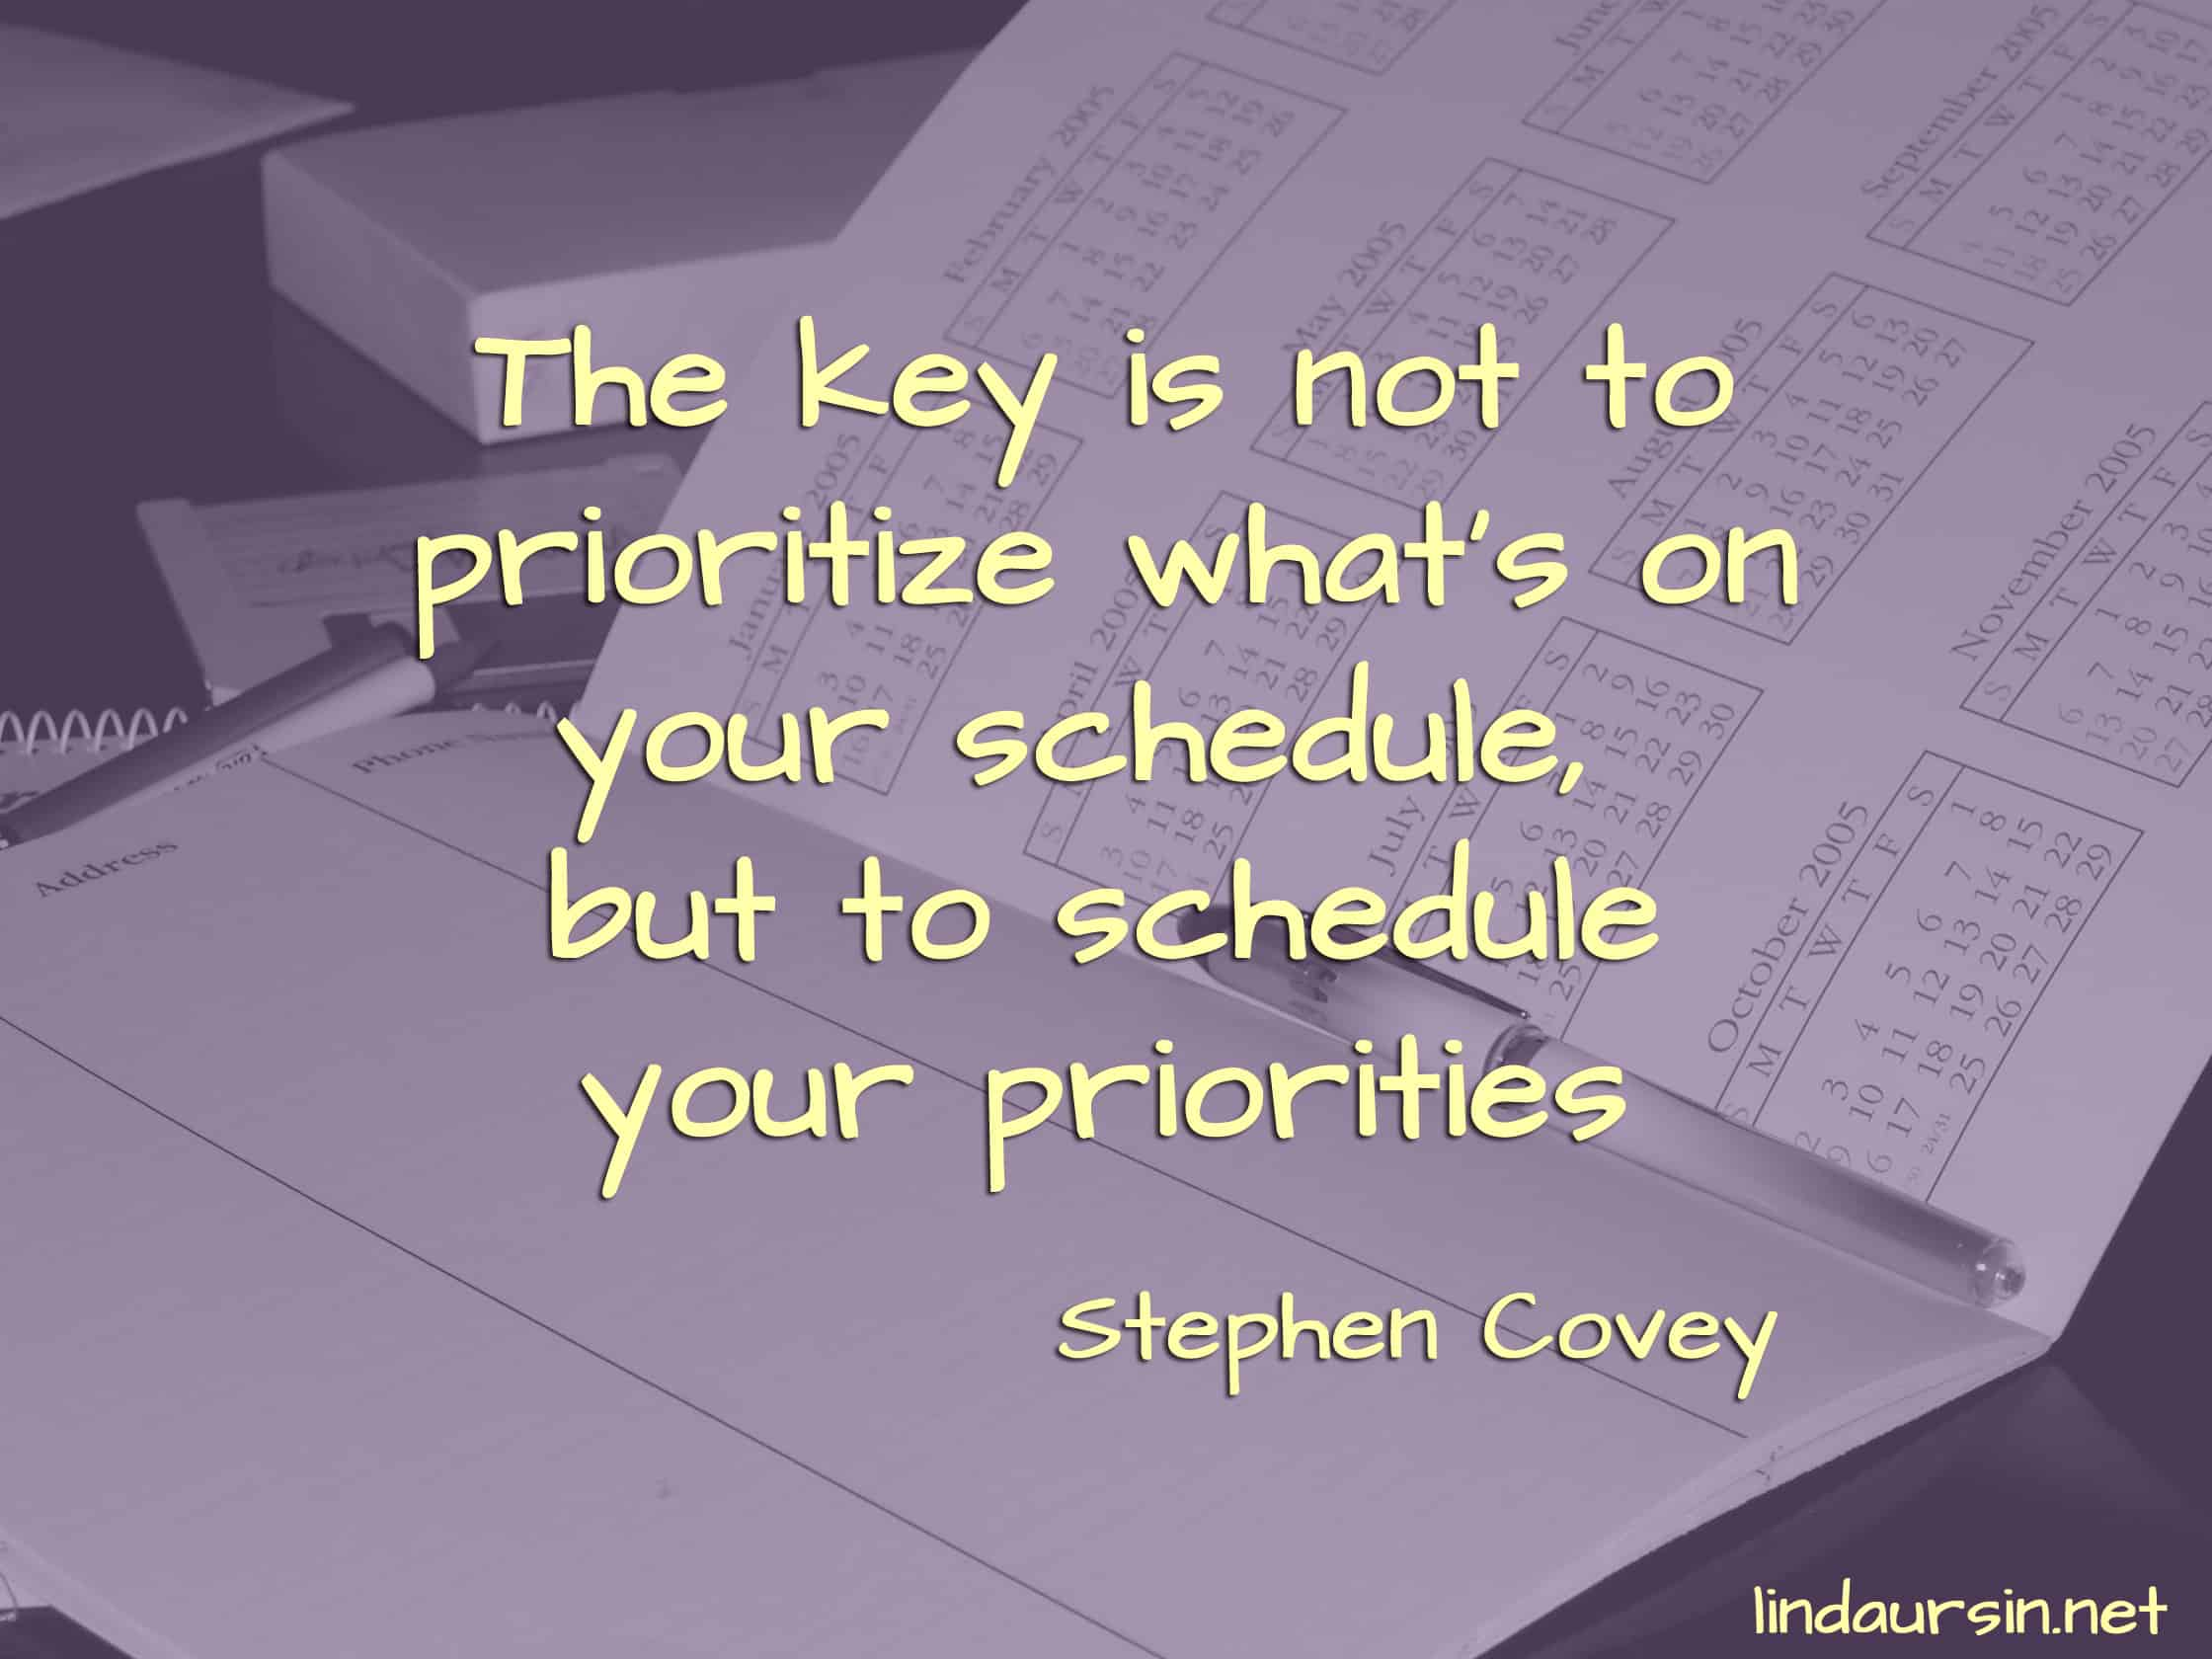 The key is not to prioritize what's on your schedule, but to schedule your priorities - Stephen Covey